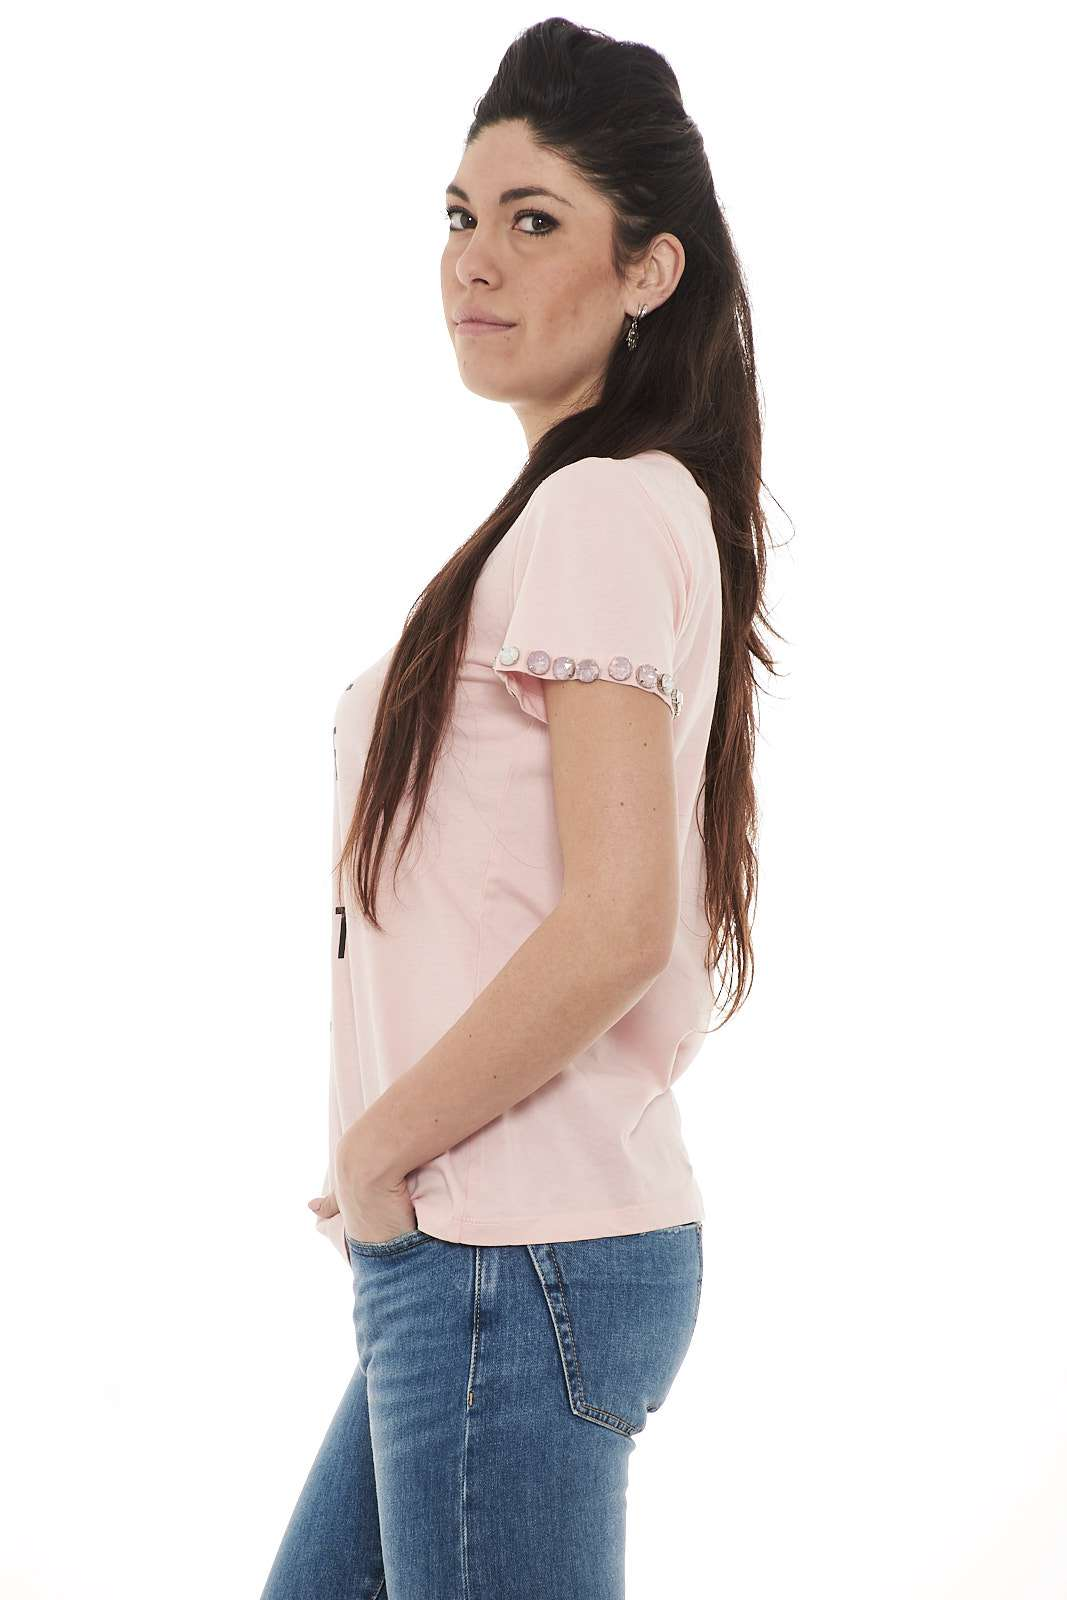 pe-outlet_parmax-t-shirt-donna-pinko-1g135k